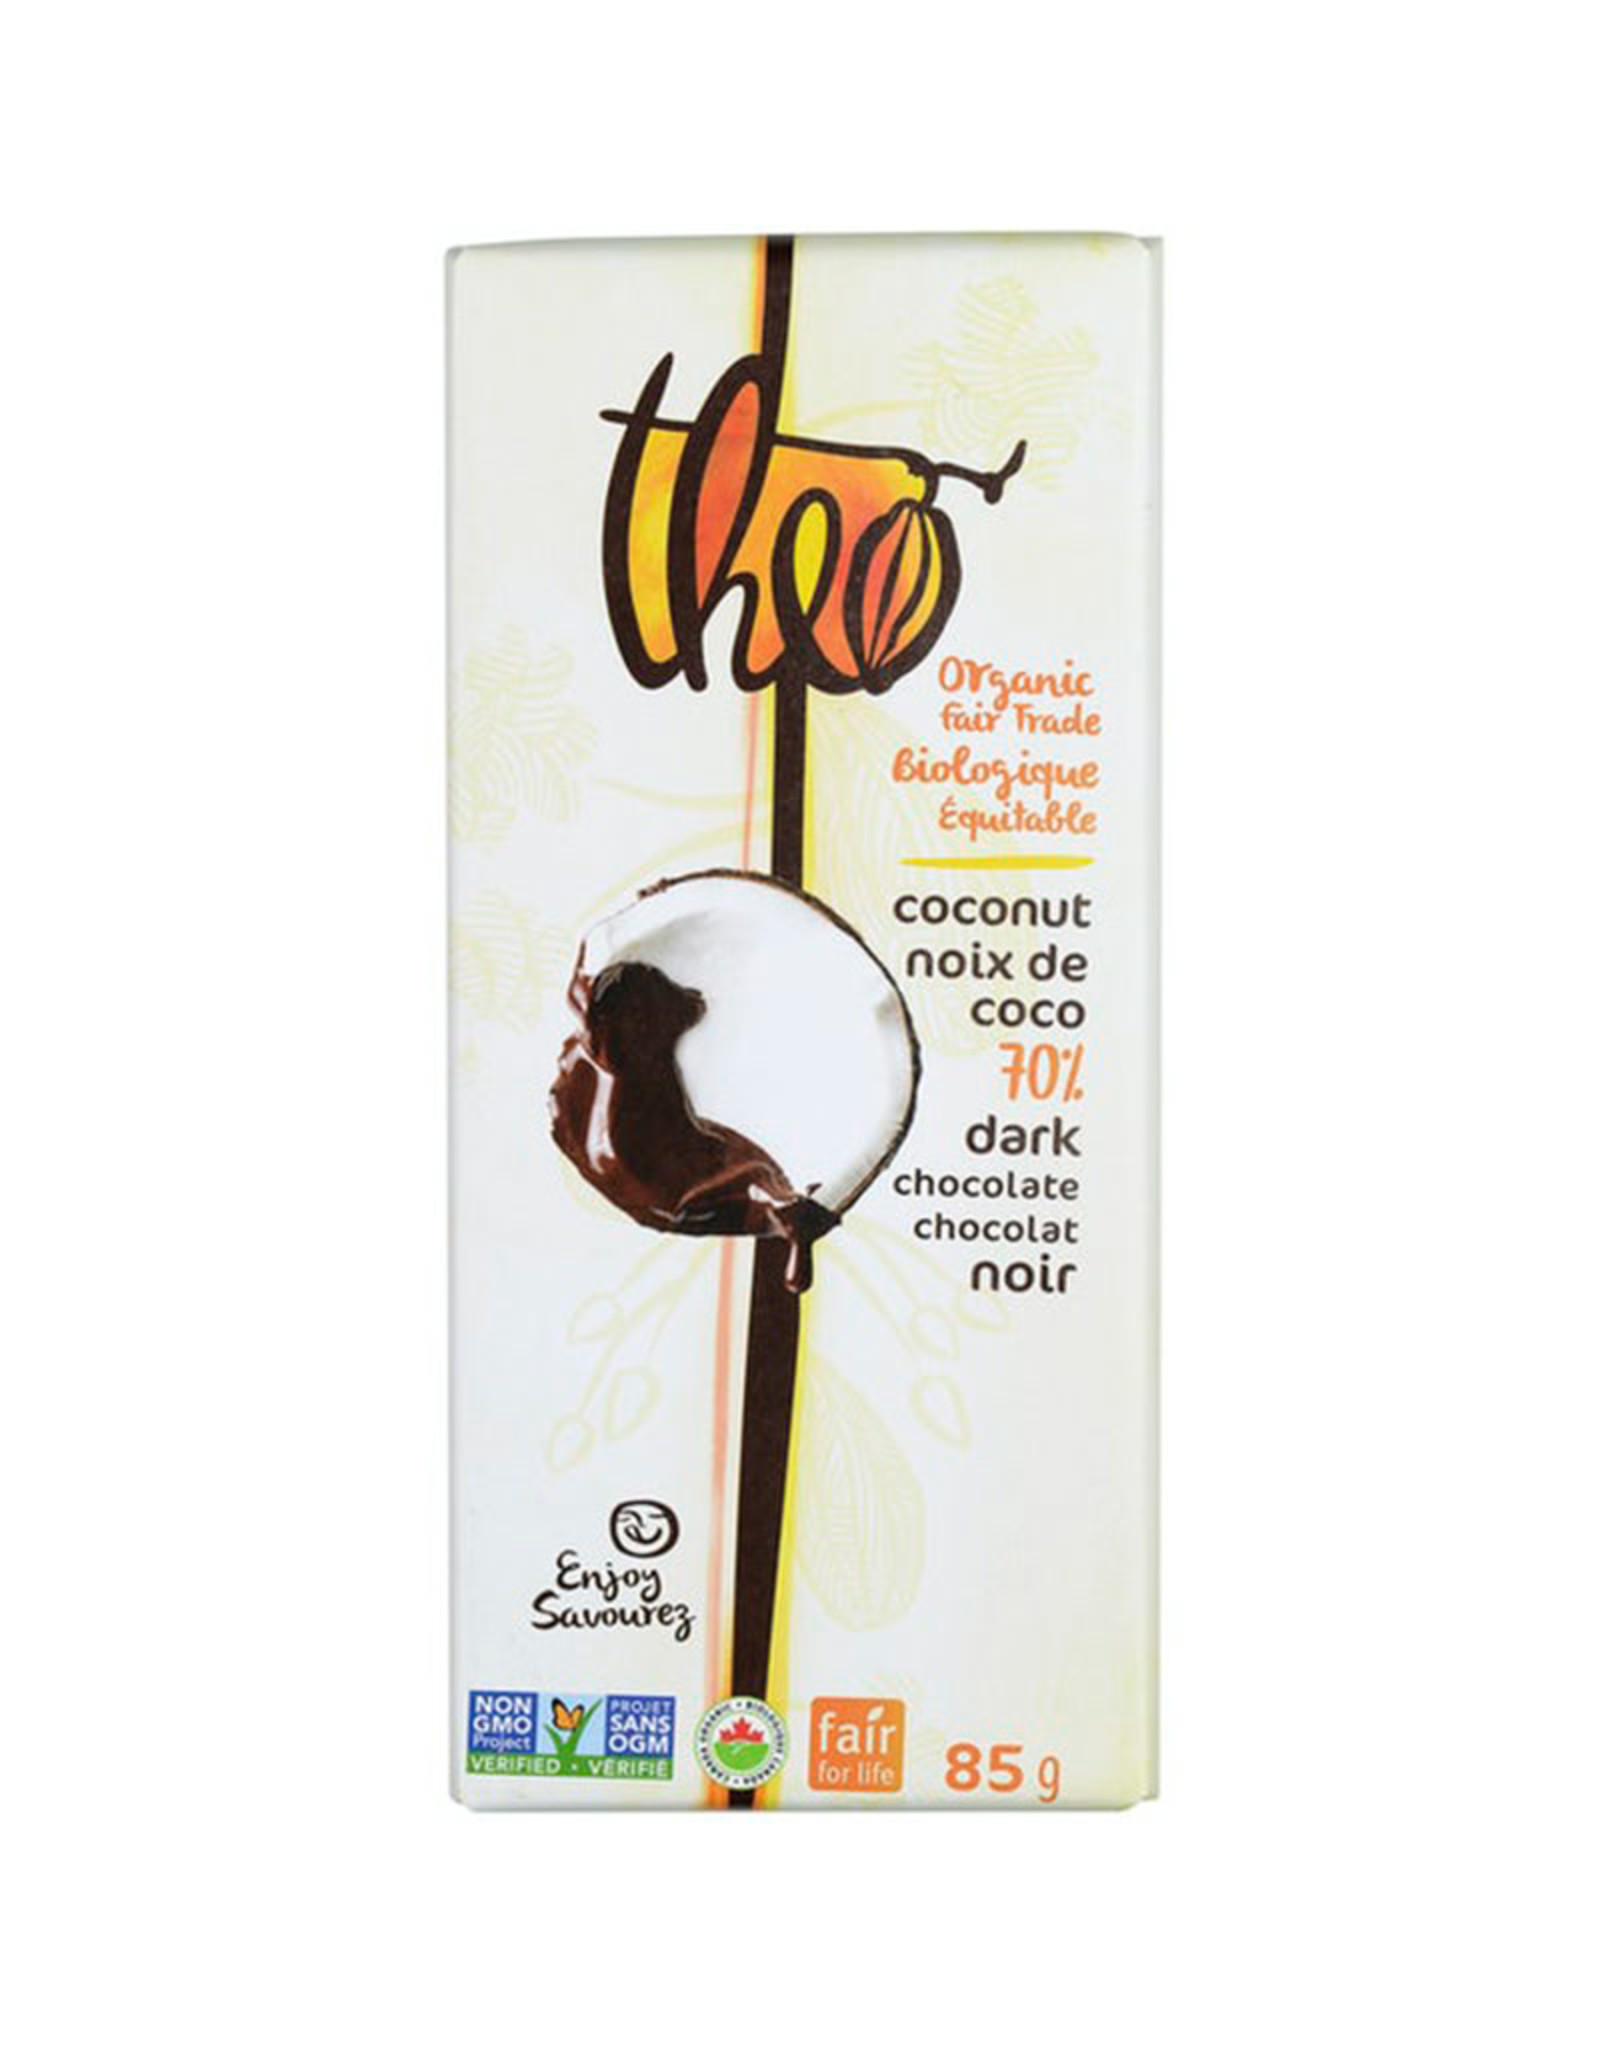 Theo Theo - Dark Chocolate, Coconut 70% (85g)